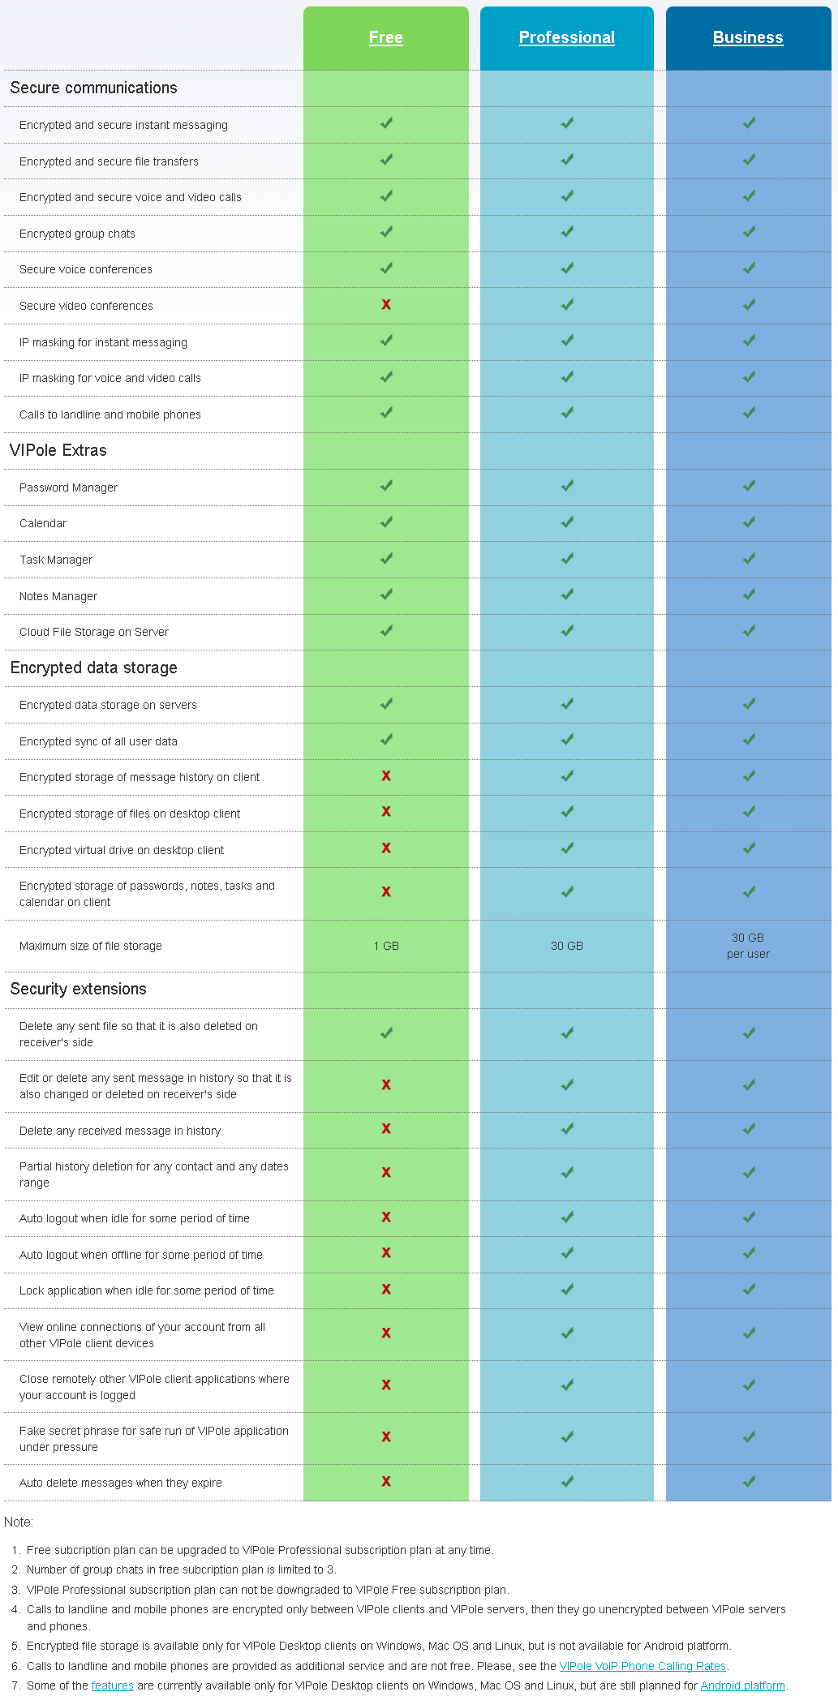 plans and features